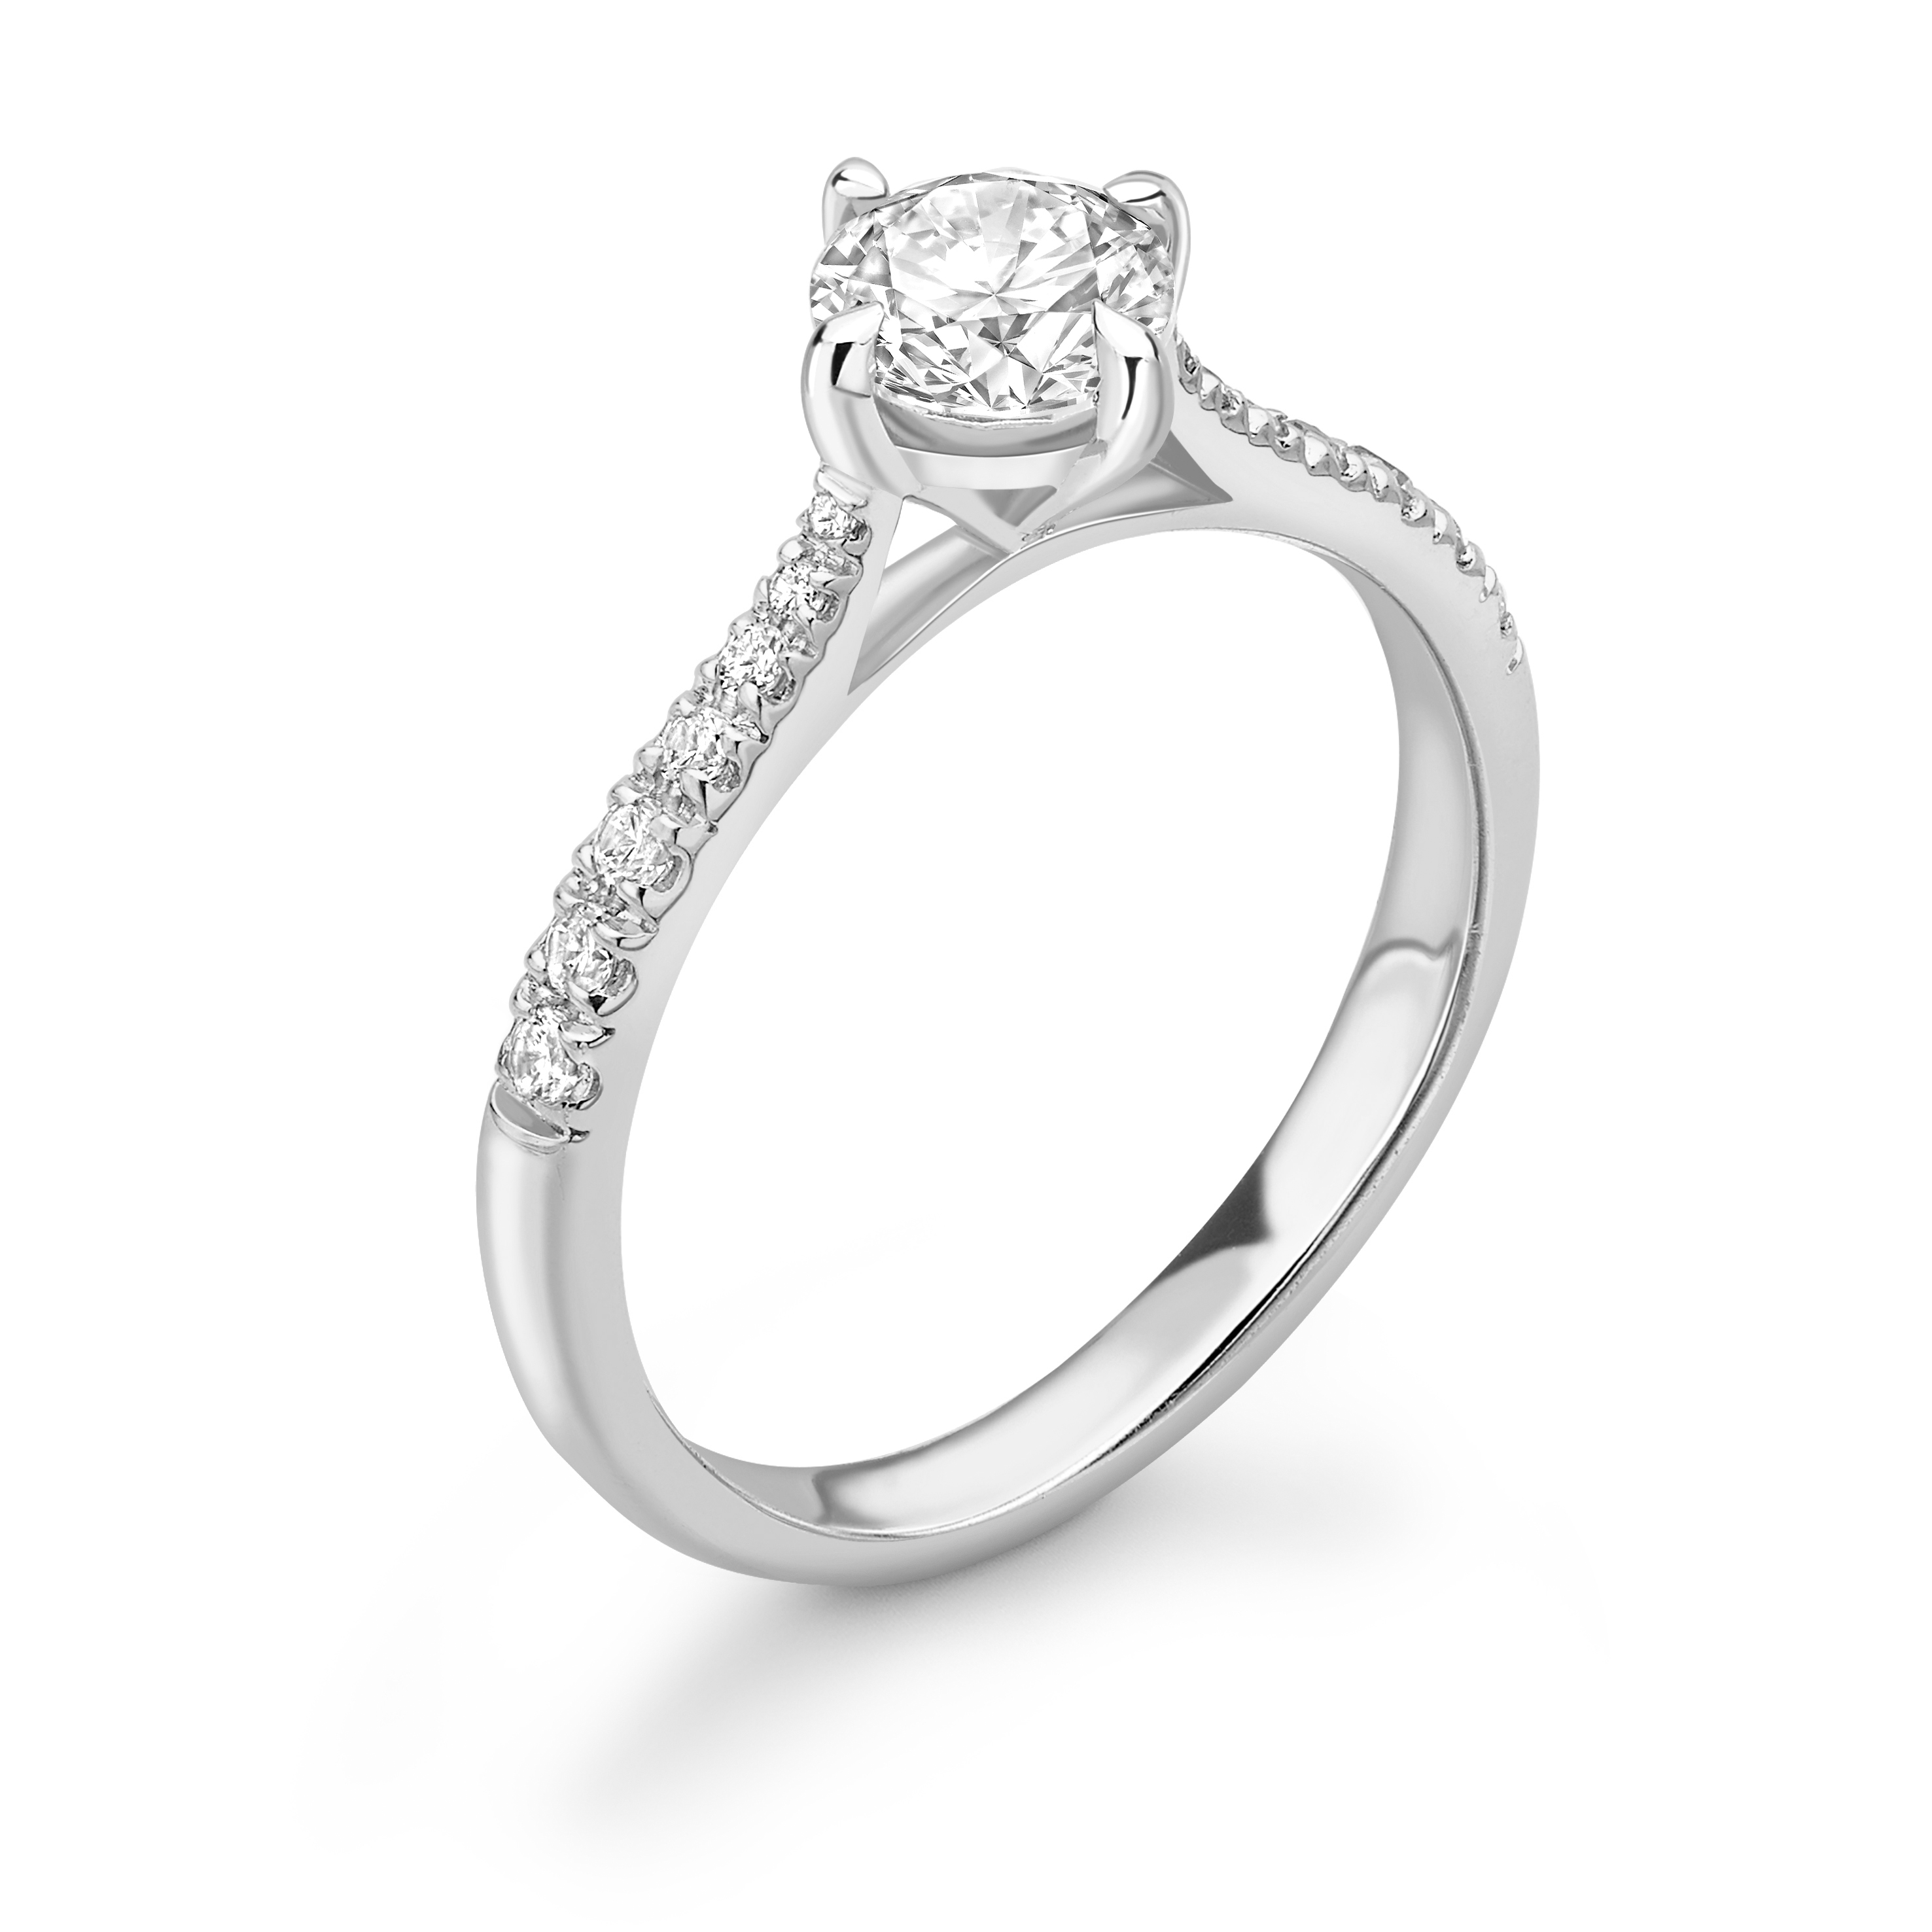 N-W-E-S Setting Tappering Shoulder Side Stone Diamond Engagement Rings